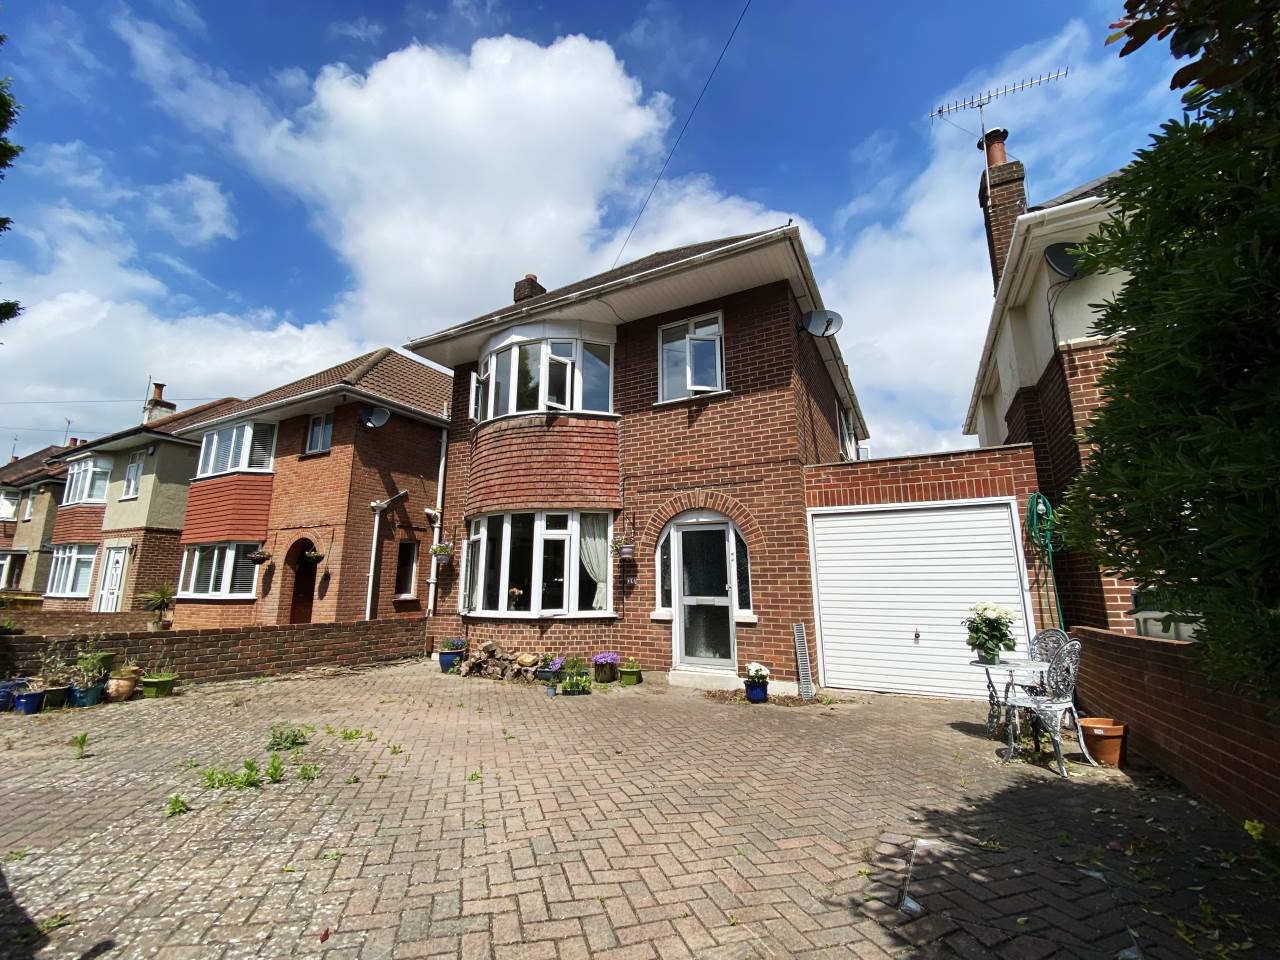 * DETACHED HOUSE * THREE BEDROOMS * LOUNGE/DINER * CONSERVATORY * KITCHEN/DINER * INTEGRAL GARAGE * PRIVATE GARDEN * OFF ROAD PARKING * EXCELLENT AREA * GREAT LOCAL SCHOOLS * EXCELLENT LOCAL AMENITIES *